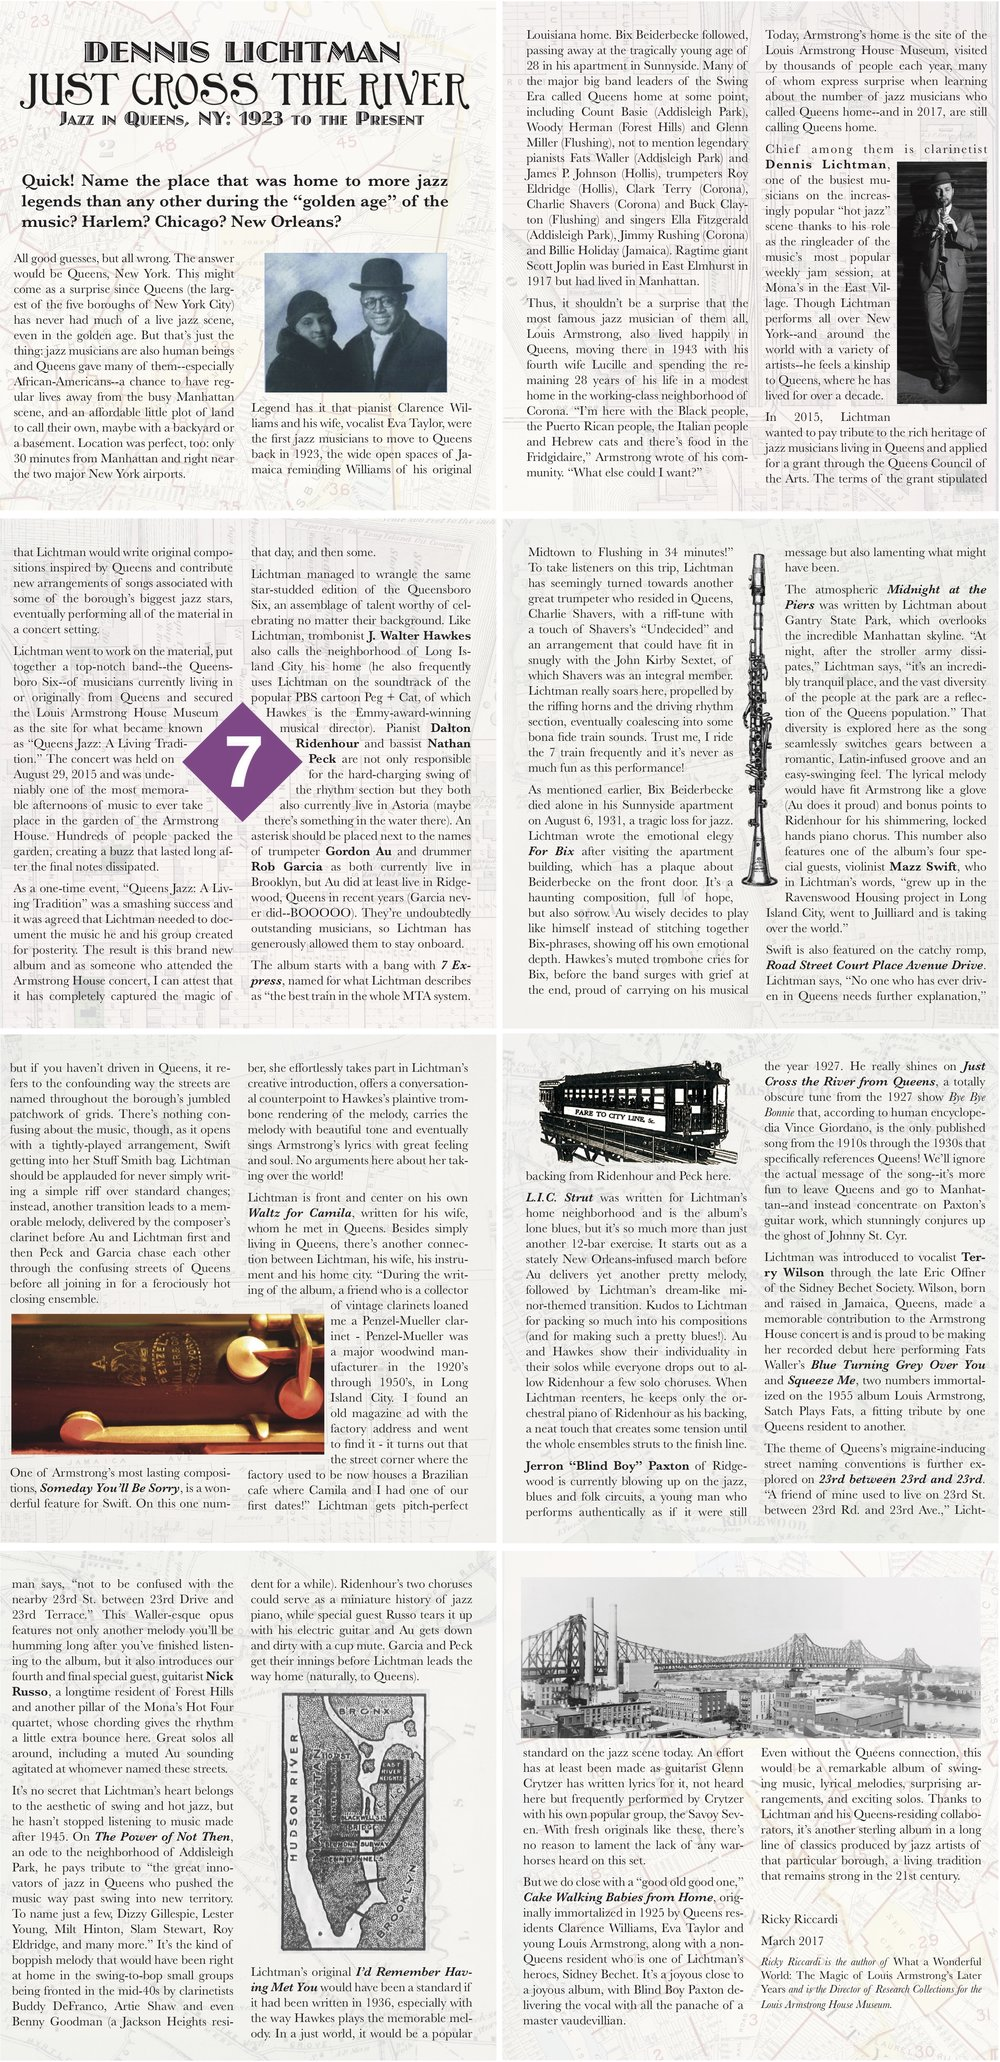 Liner notes digital.jpg